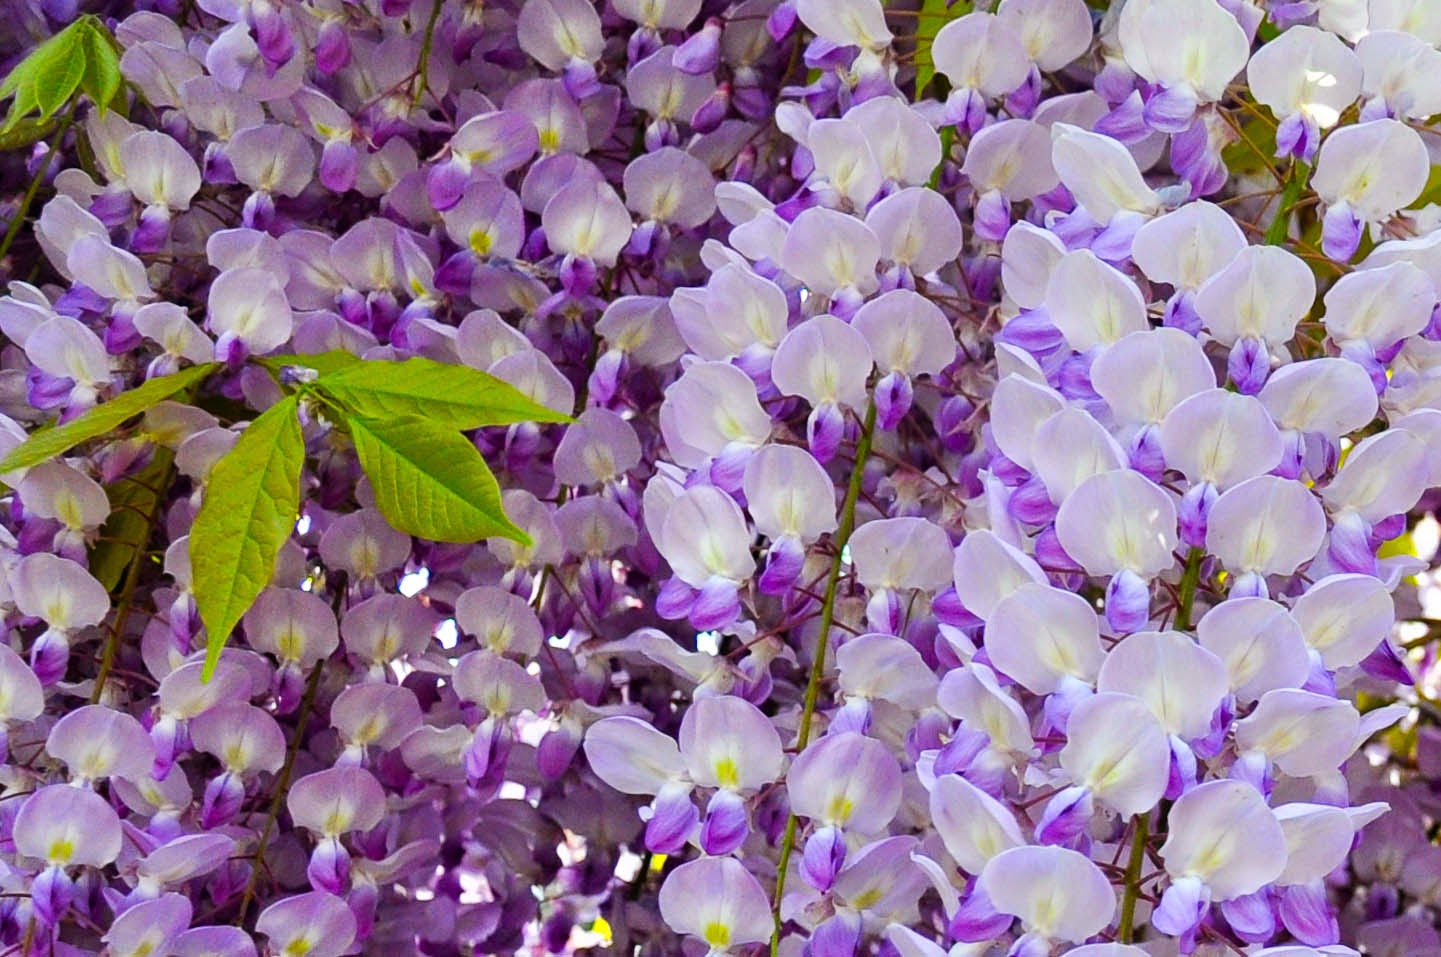 Flowering wisteria, Wisteria in bloom